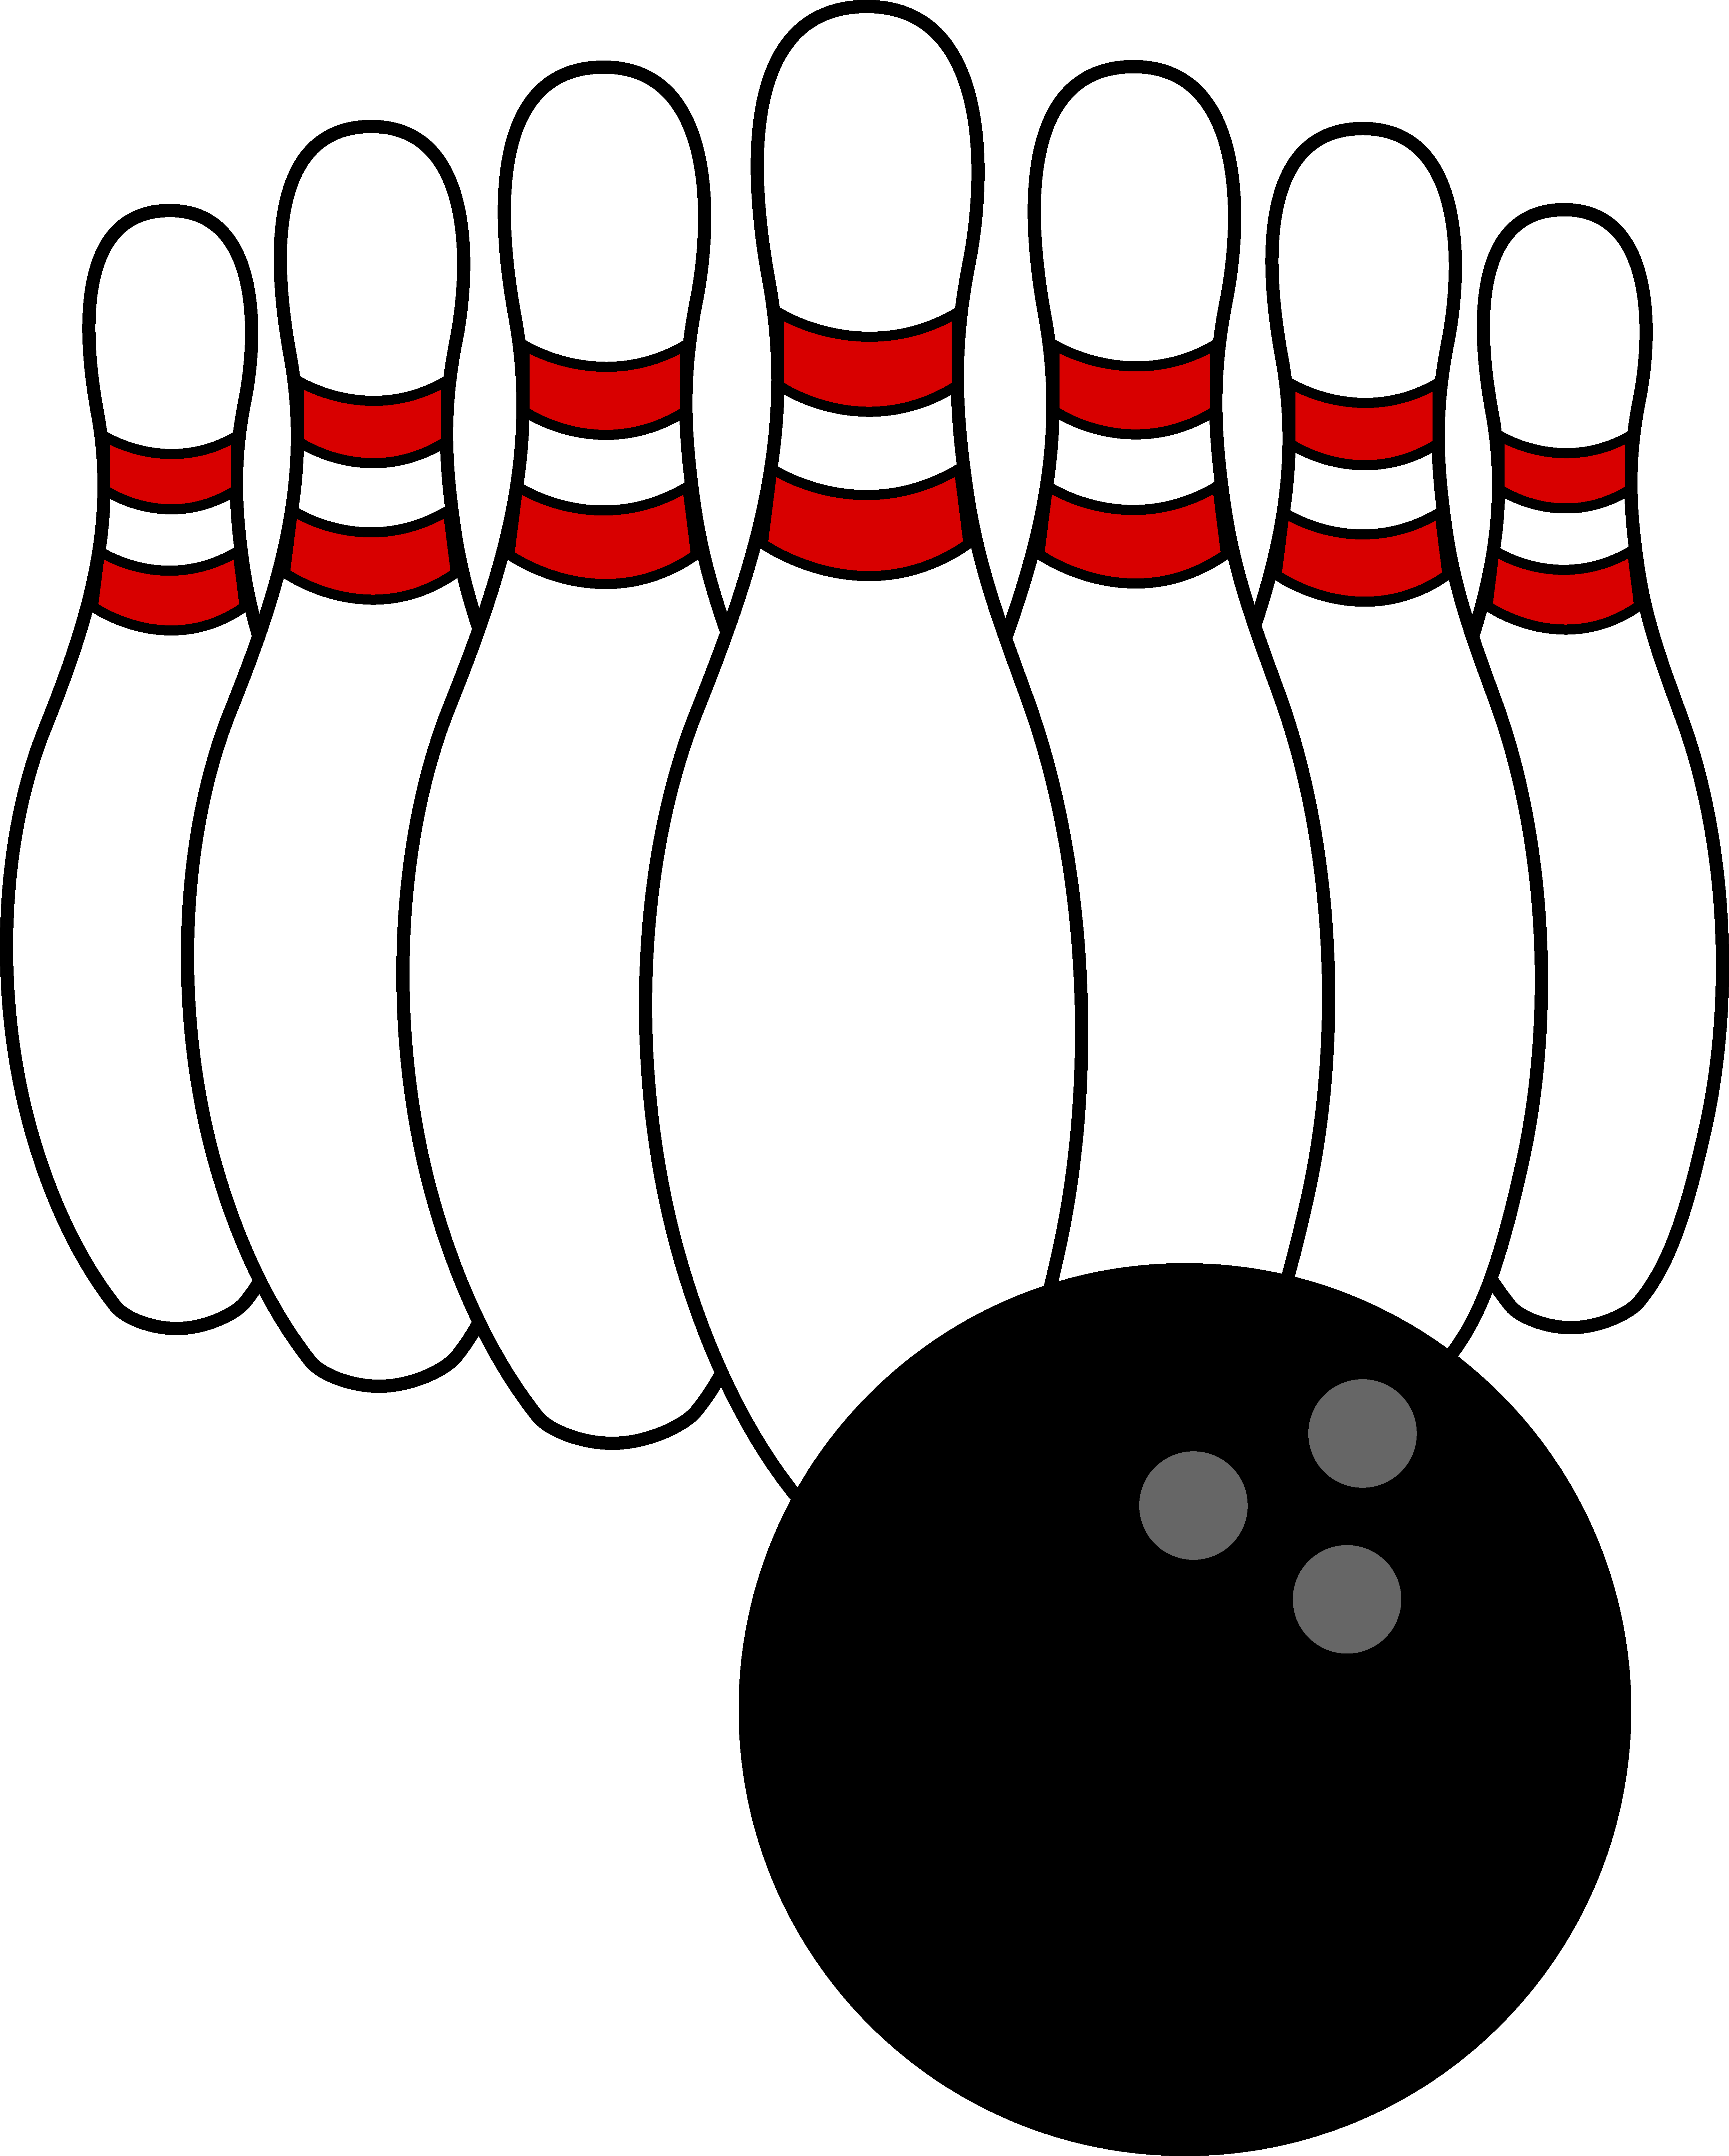 Clip Art Clipart Bowling 1000 images about bowling on pinterest fred flintstone ball and clip art